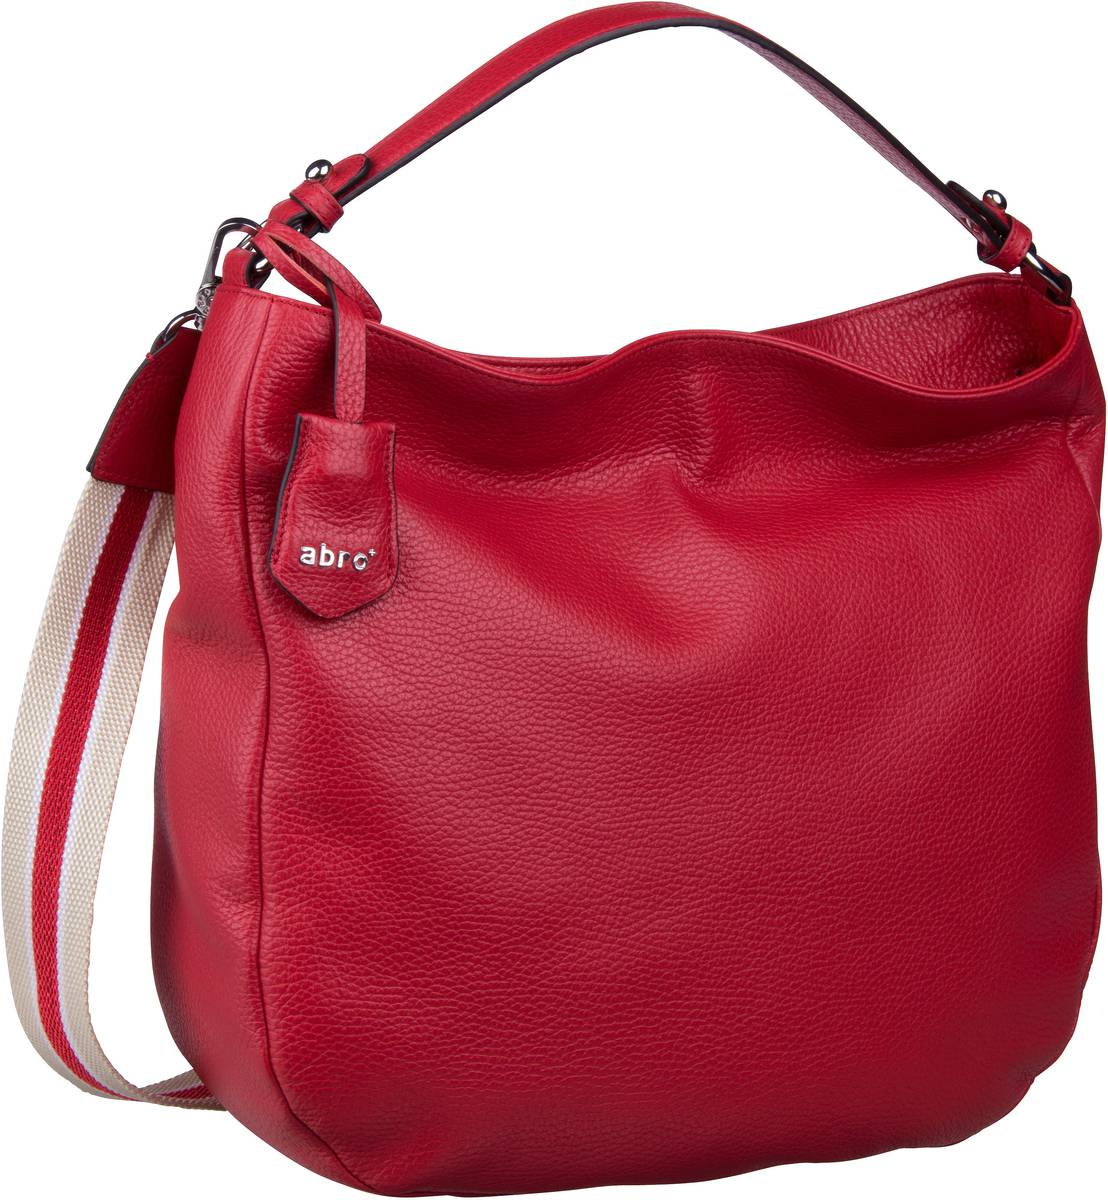 Handtasche Calf Adria 28390 Red